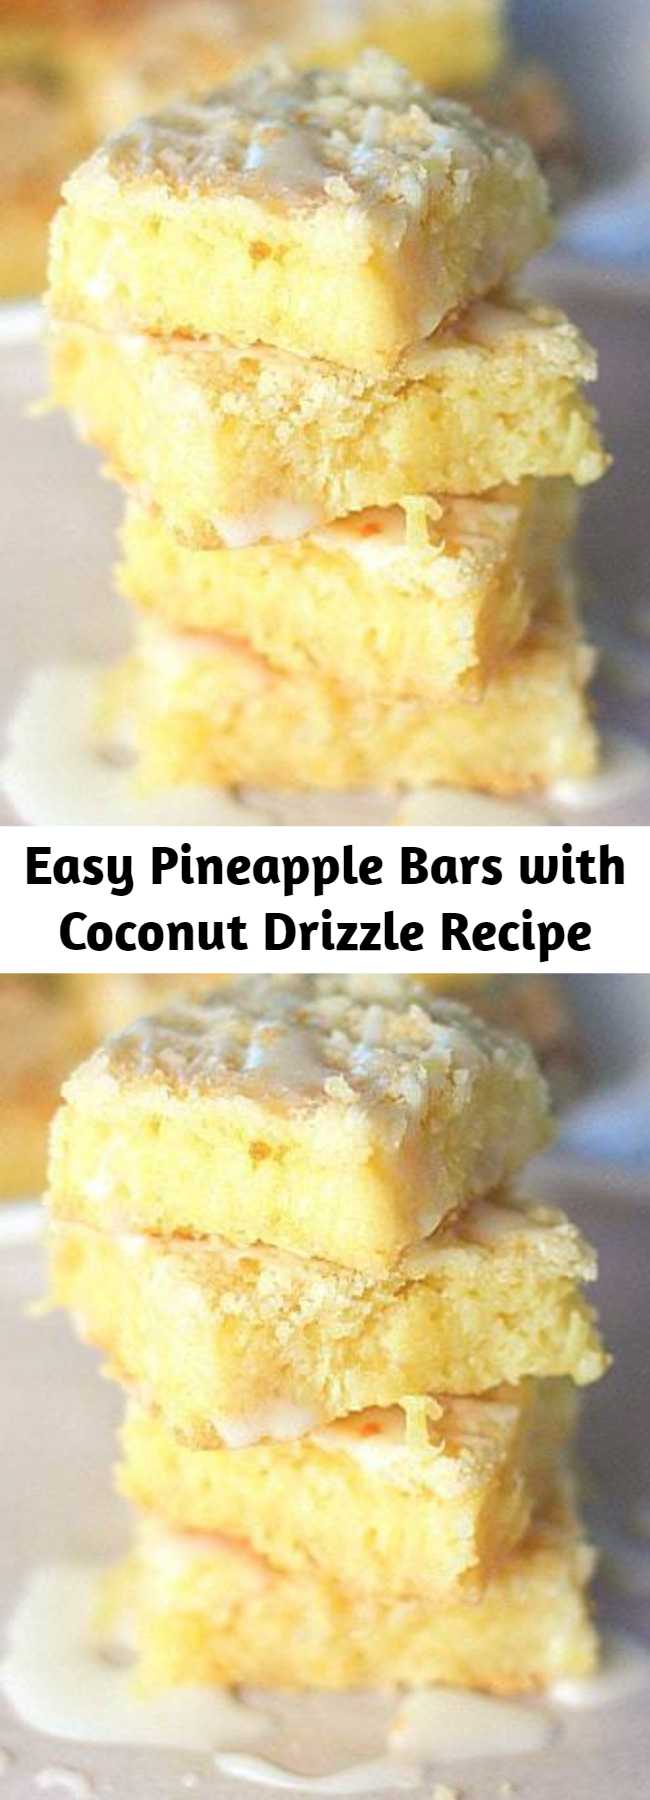 Easy Pineapple Bars with Coconut Drizzle Recipe - Only a few ingredients and super easy to make. I topped with optional Coconut Drizzle...they are good with or without!